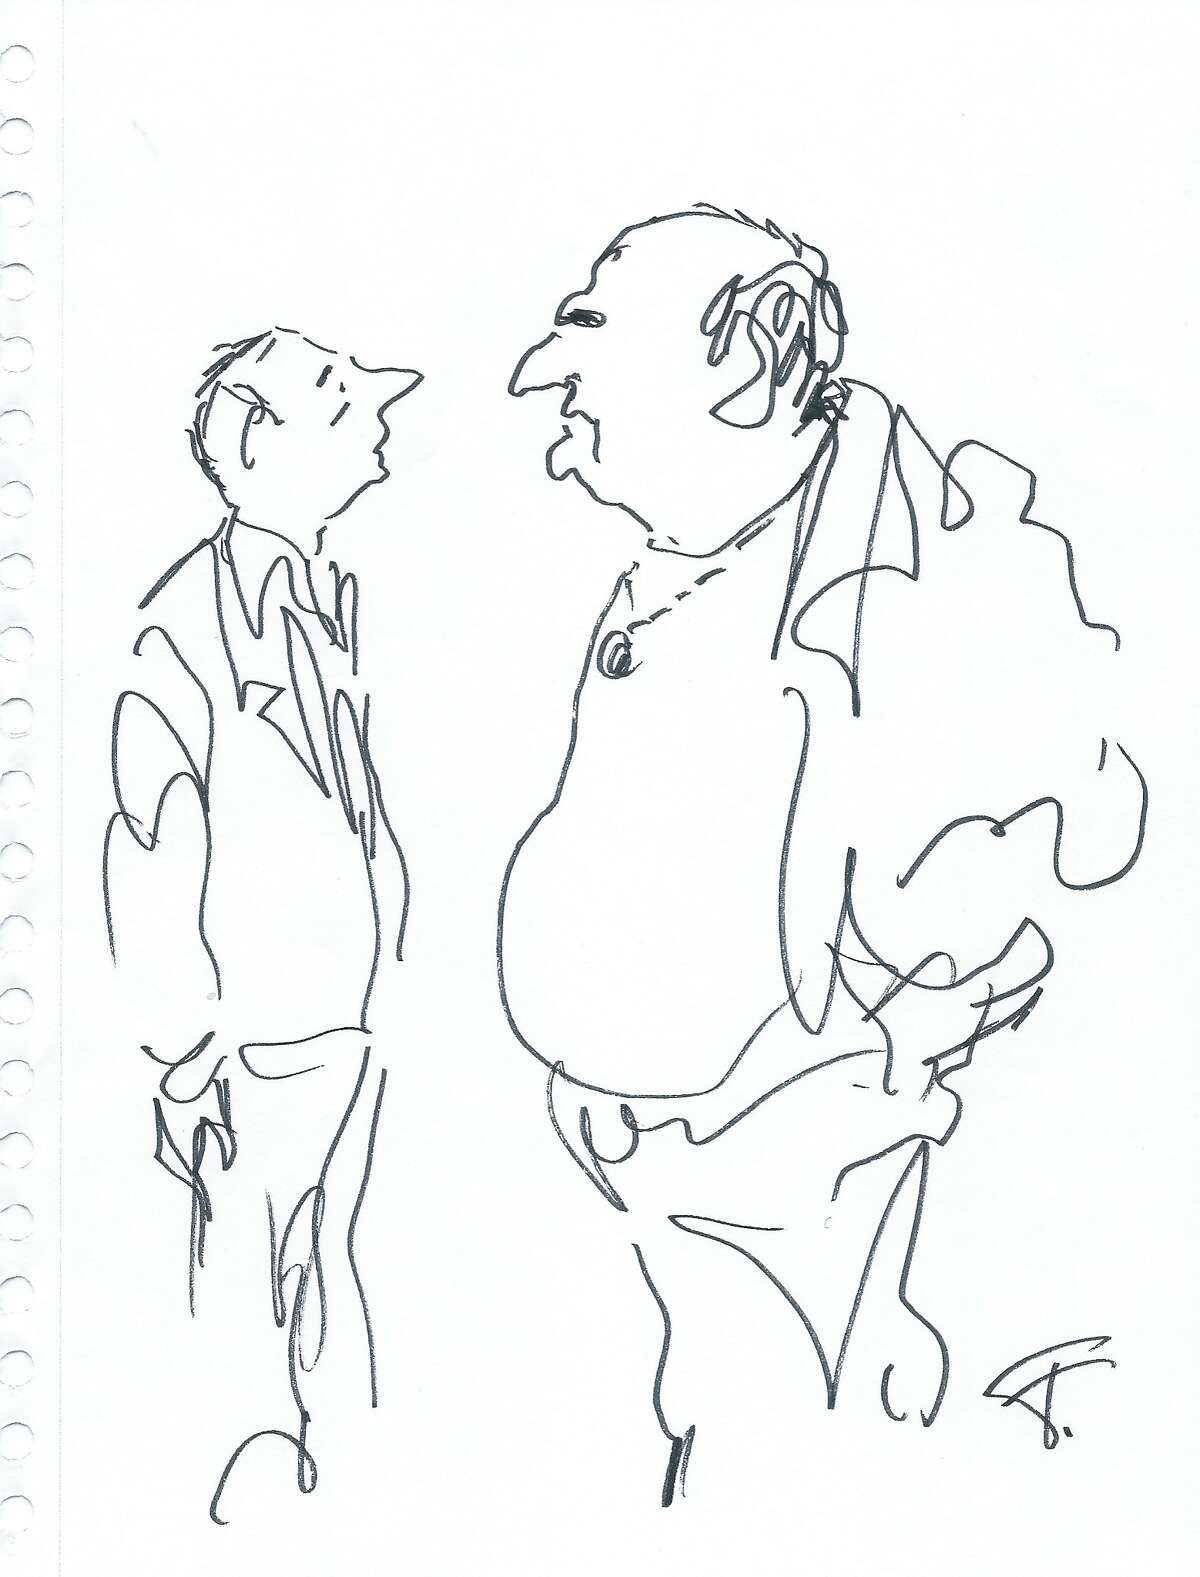 here are cartoons. BY Jules Feiffer Old Bernard and Huey. Credit Jules Feiffer [he drew these for the director, Dan Mirvish]